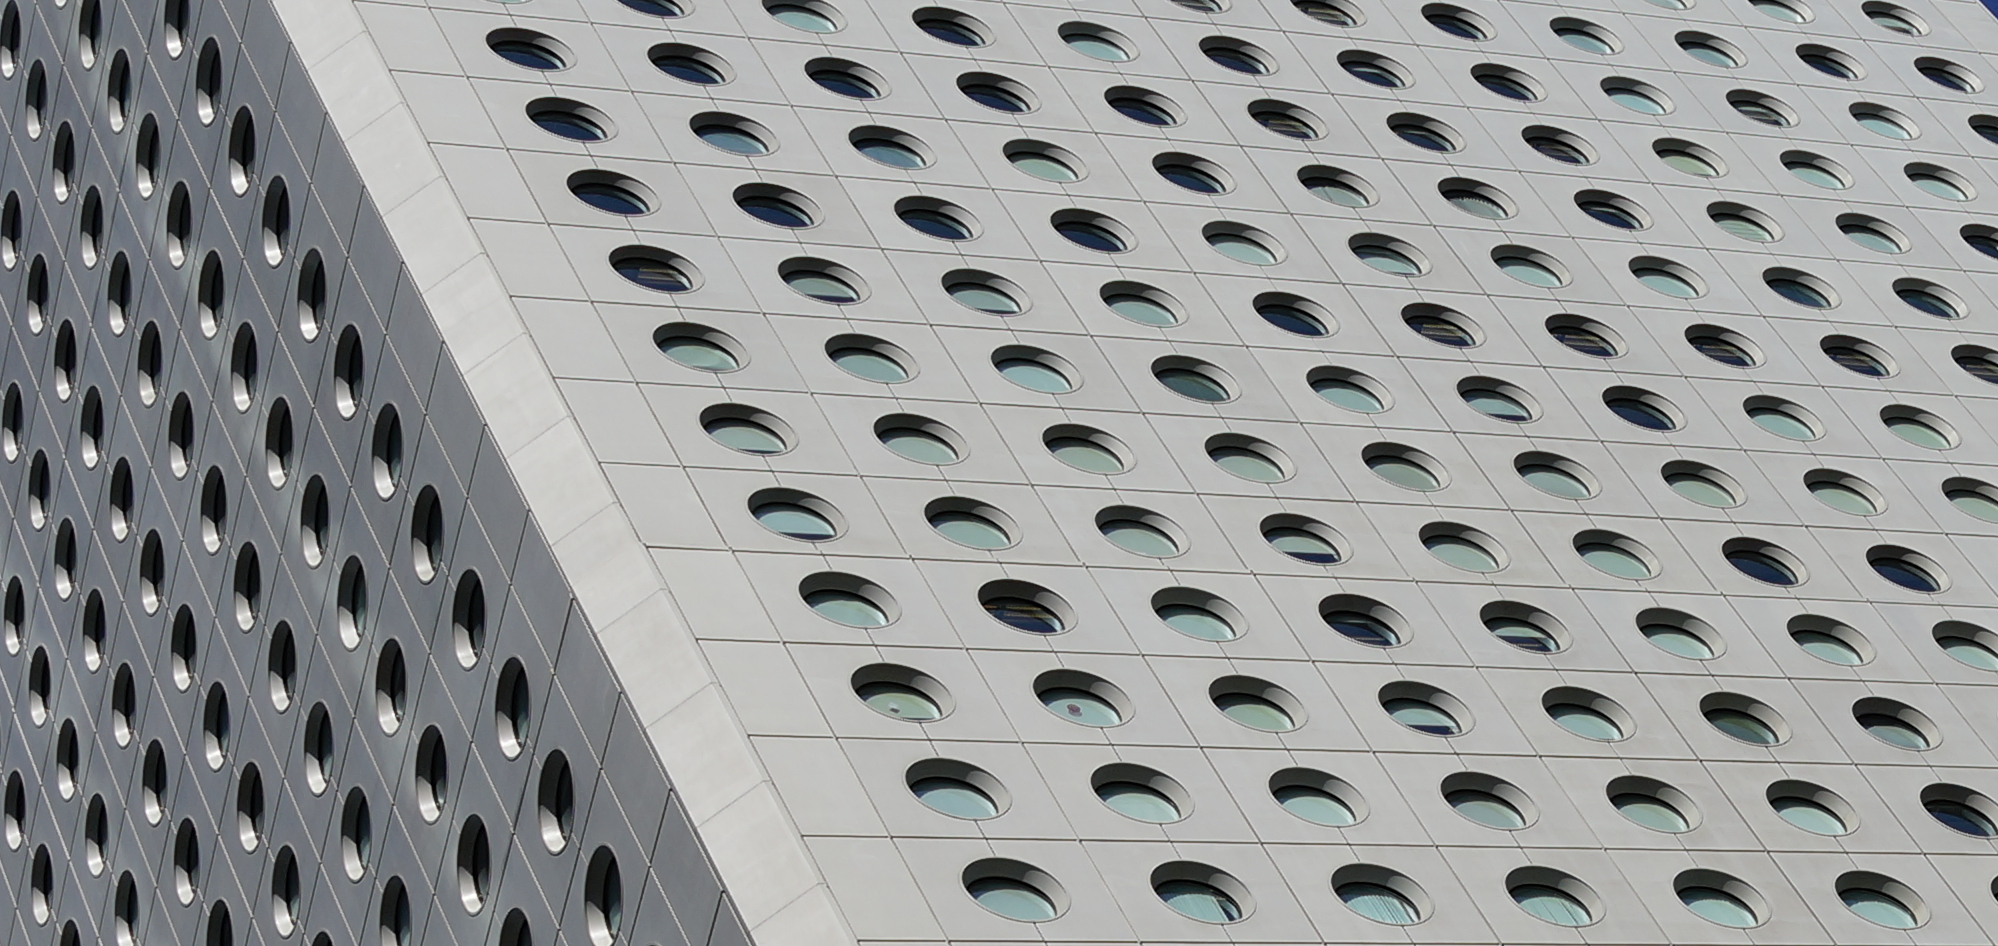 Another shot of Jardine House - aka the building of 1,000 a.sholes!